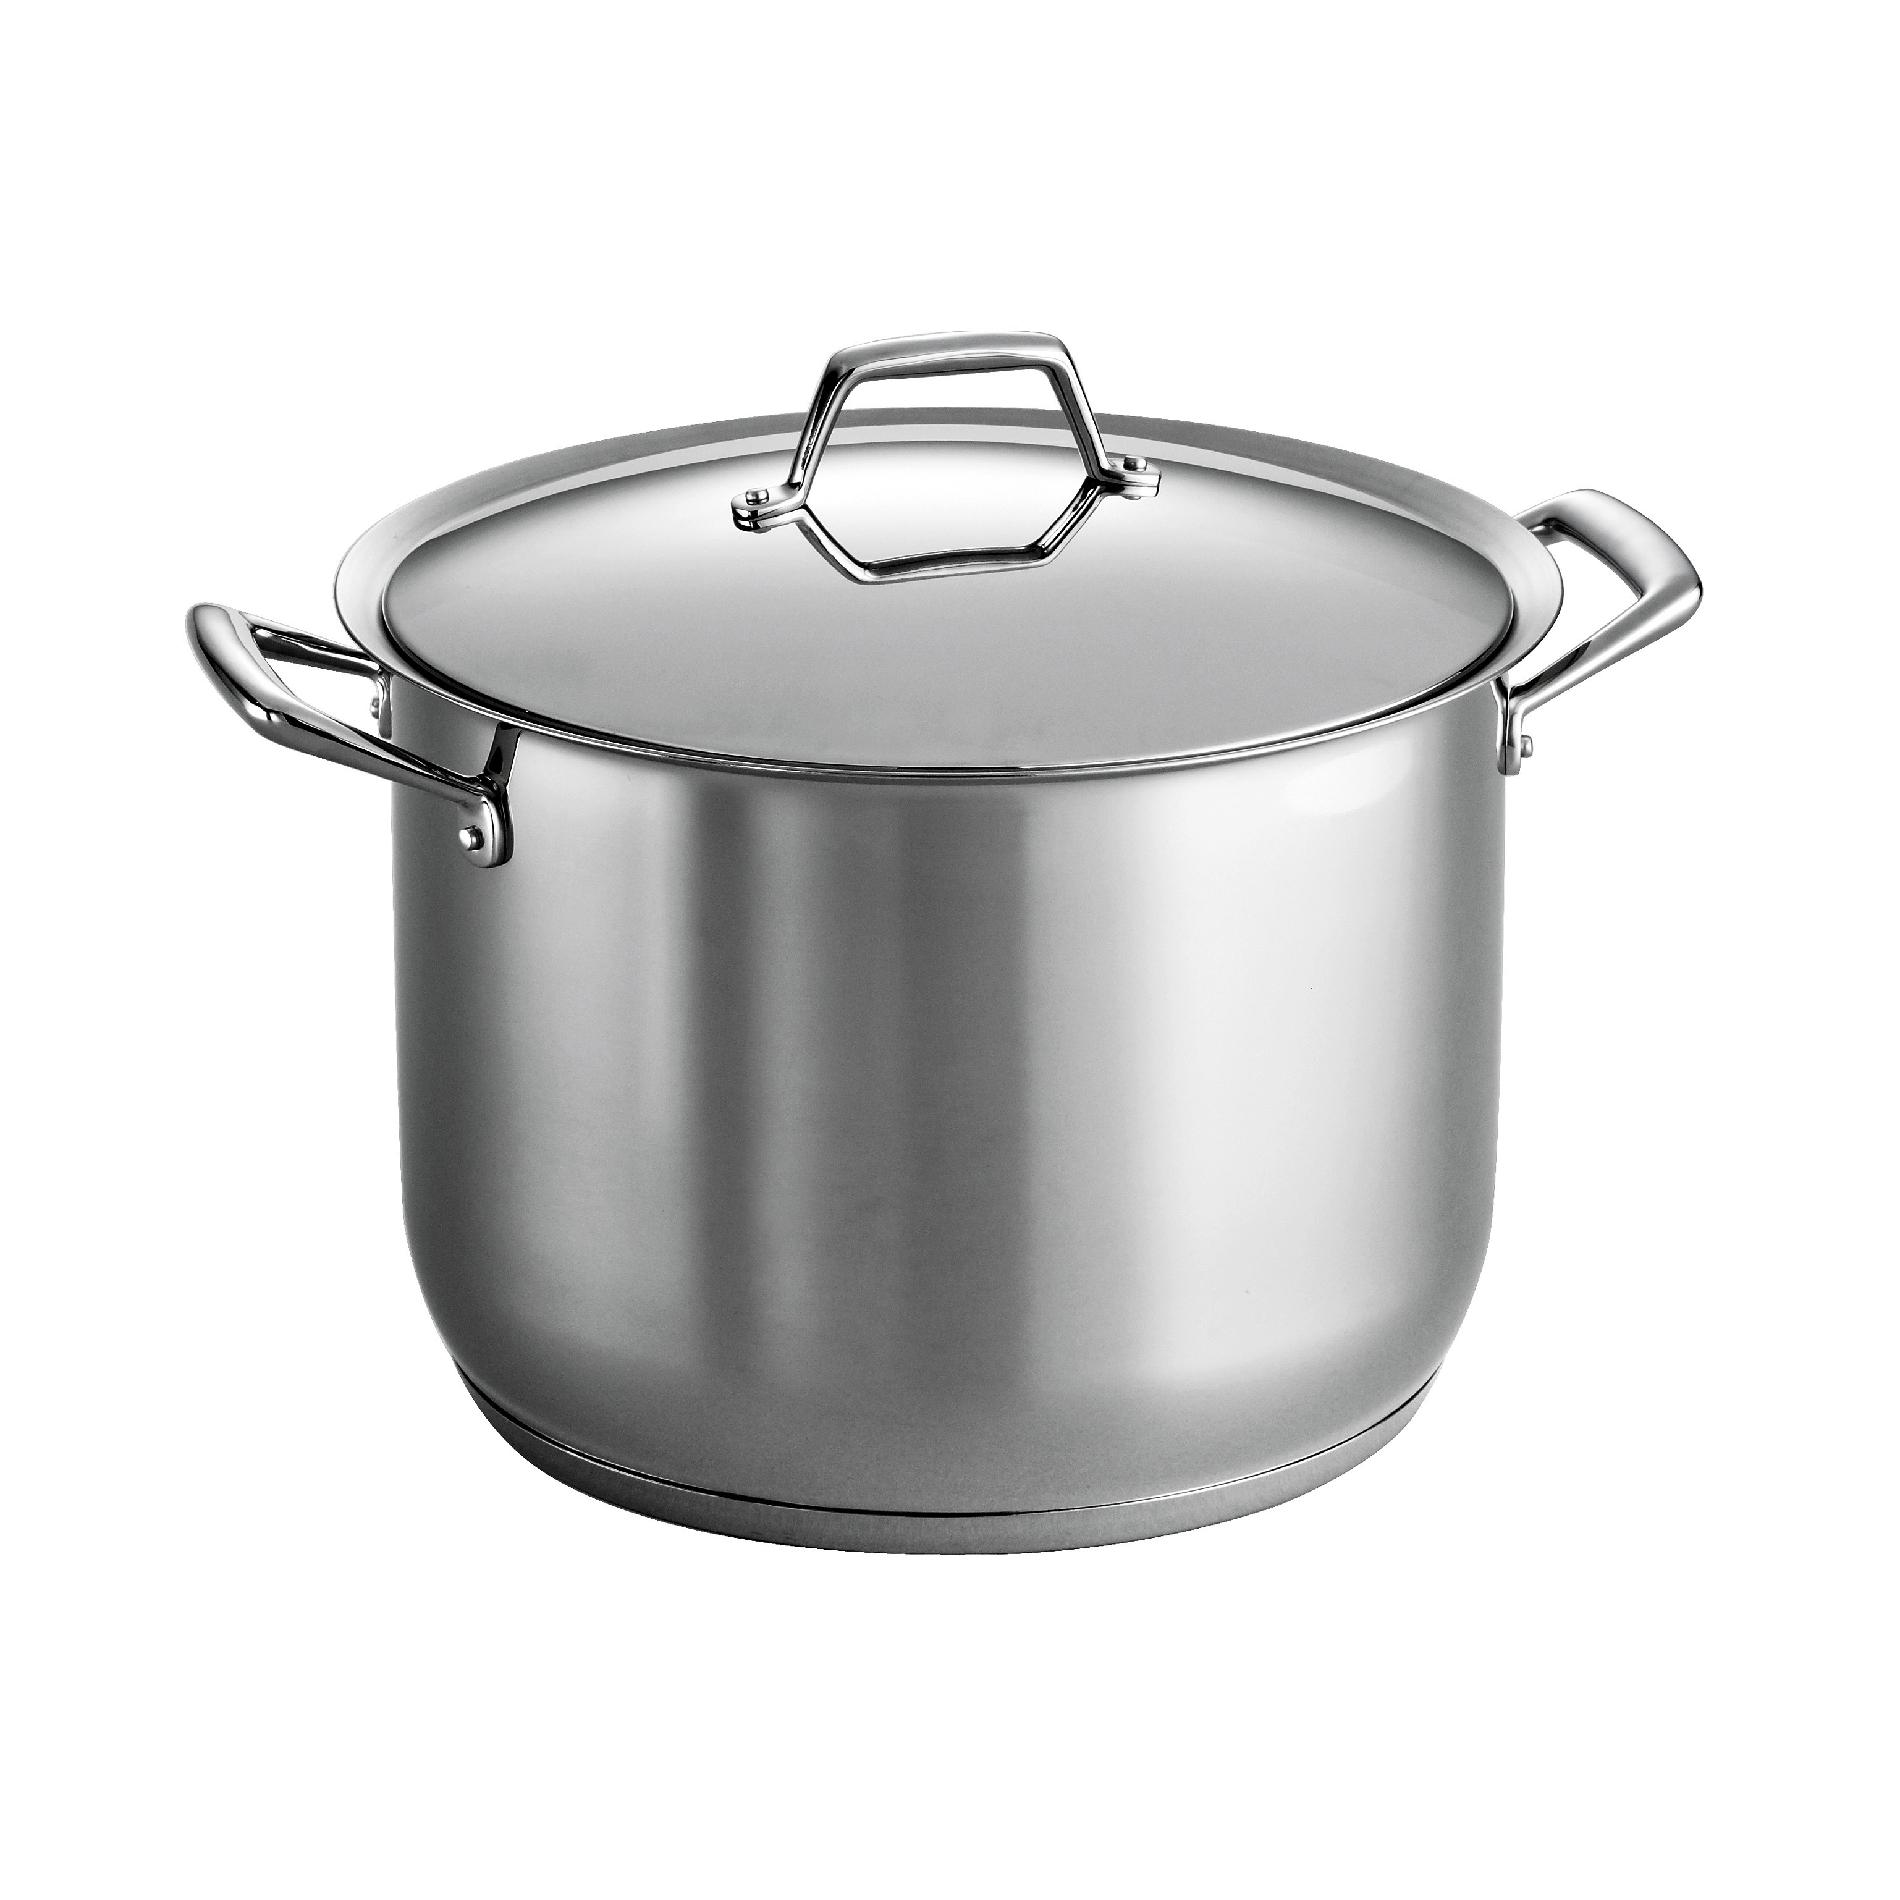 Tramontina Gourmet Prima 18 10 Stainless Steel 16 Qt Covered Stock Pot - Home Kitchen